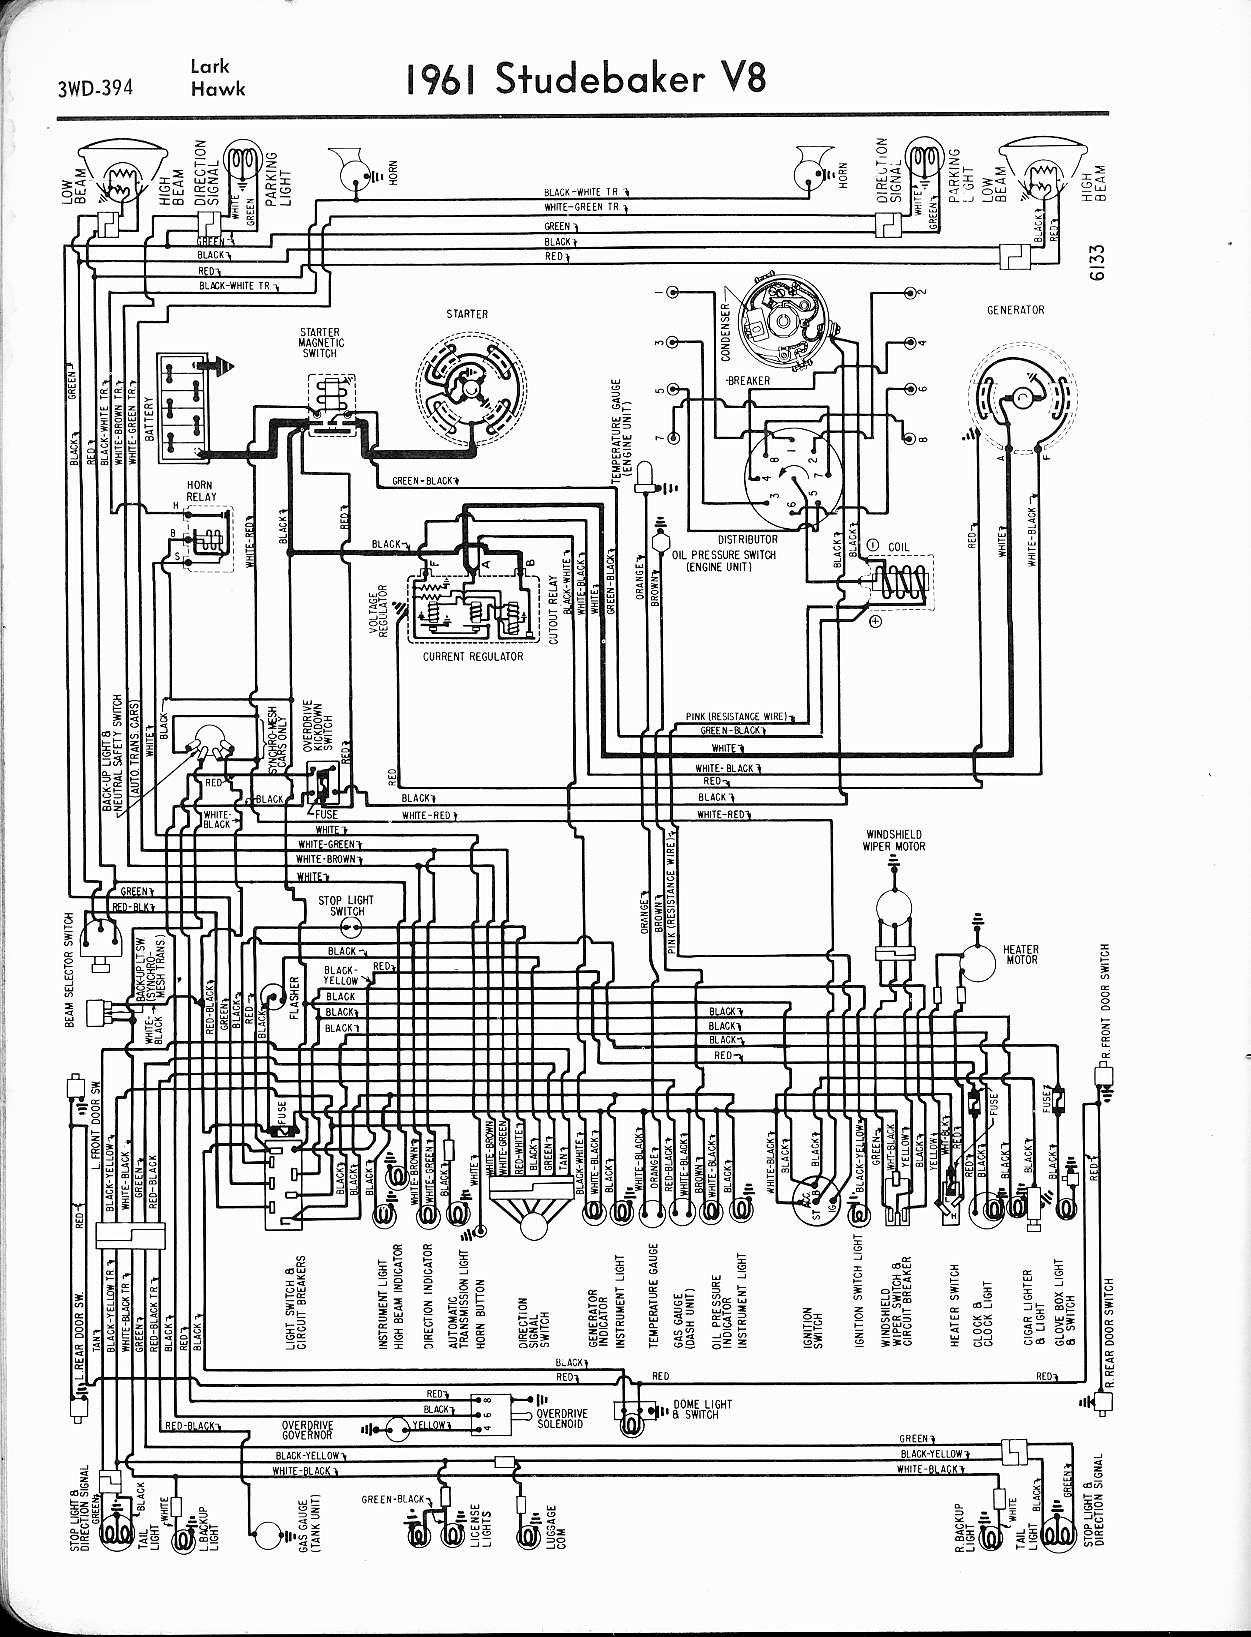 MWire5765 394 studebaker wiring diagrams the old car manual project studebaker wiring diagrams at n-0.co